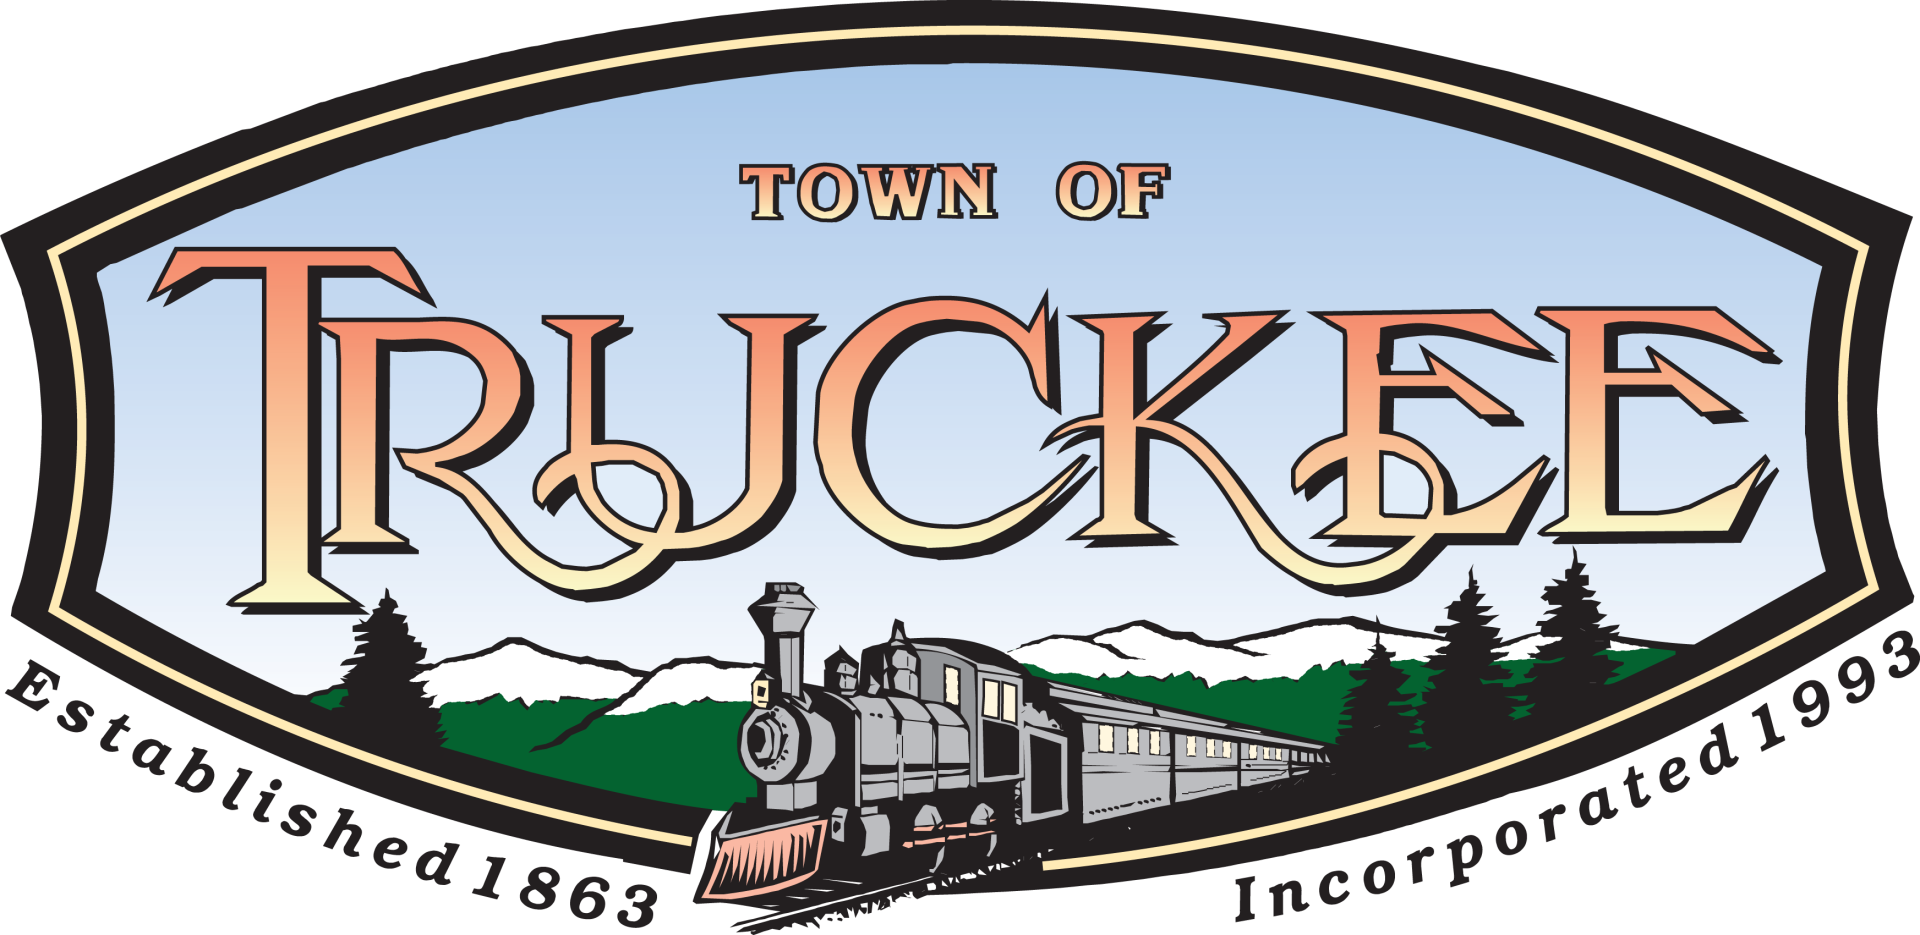 TownofTruckee.png